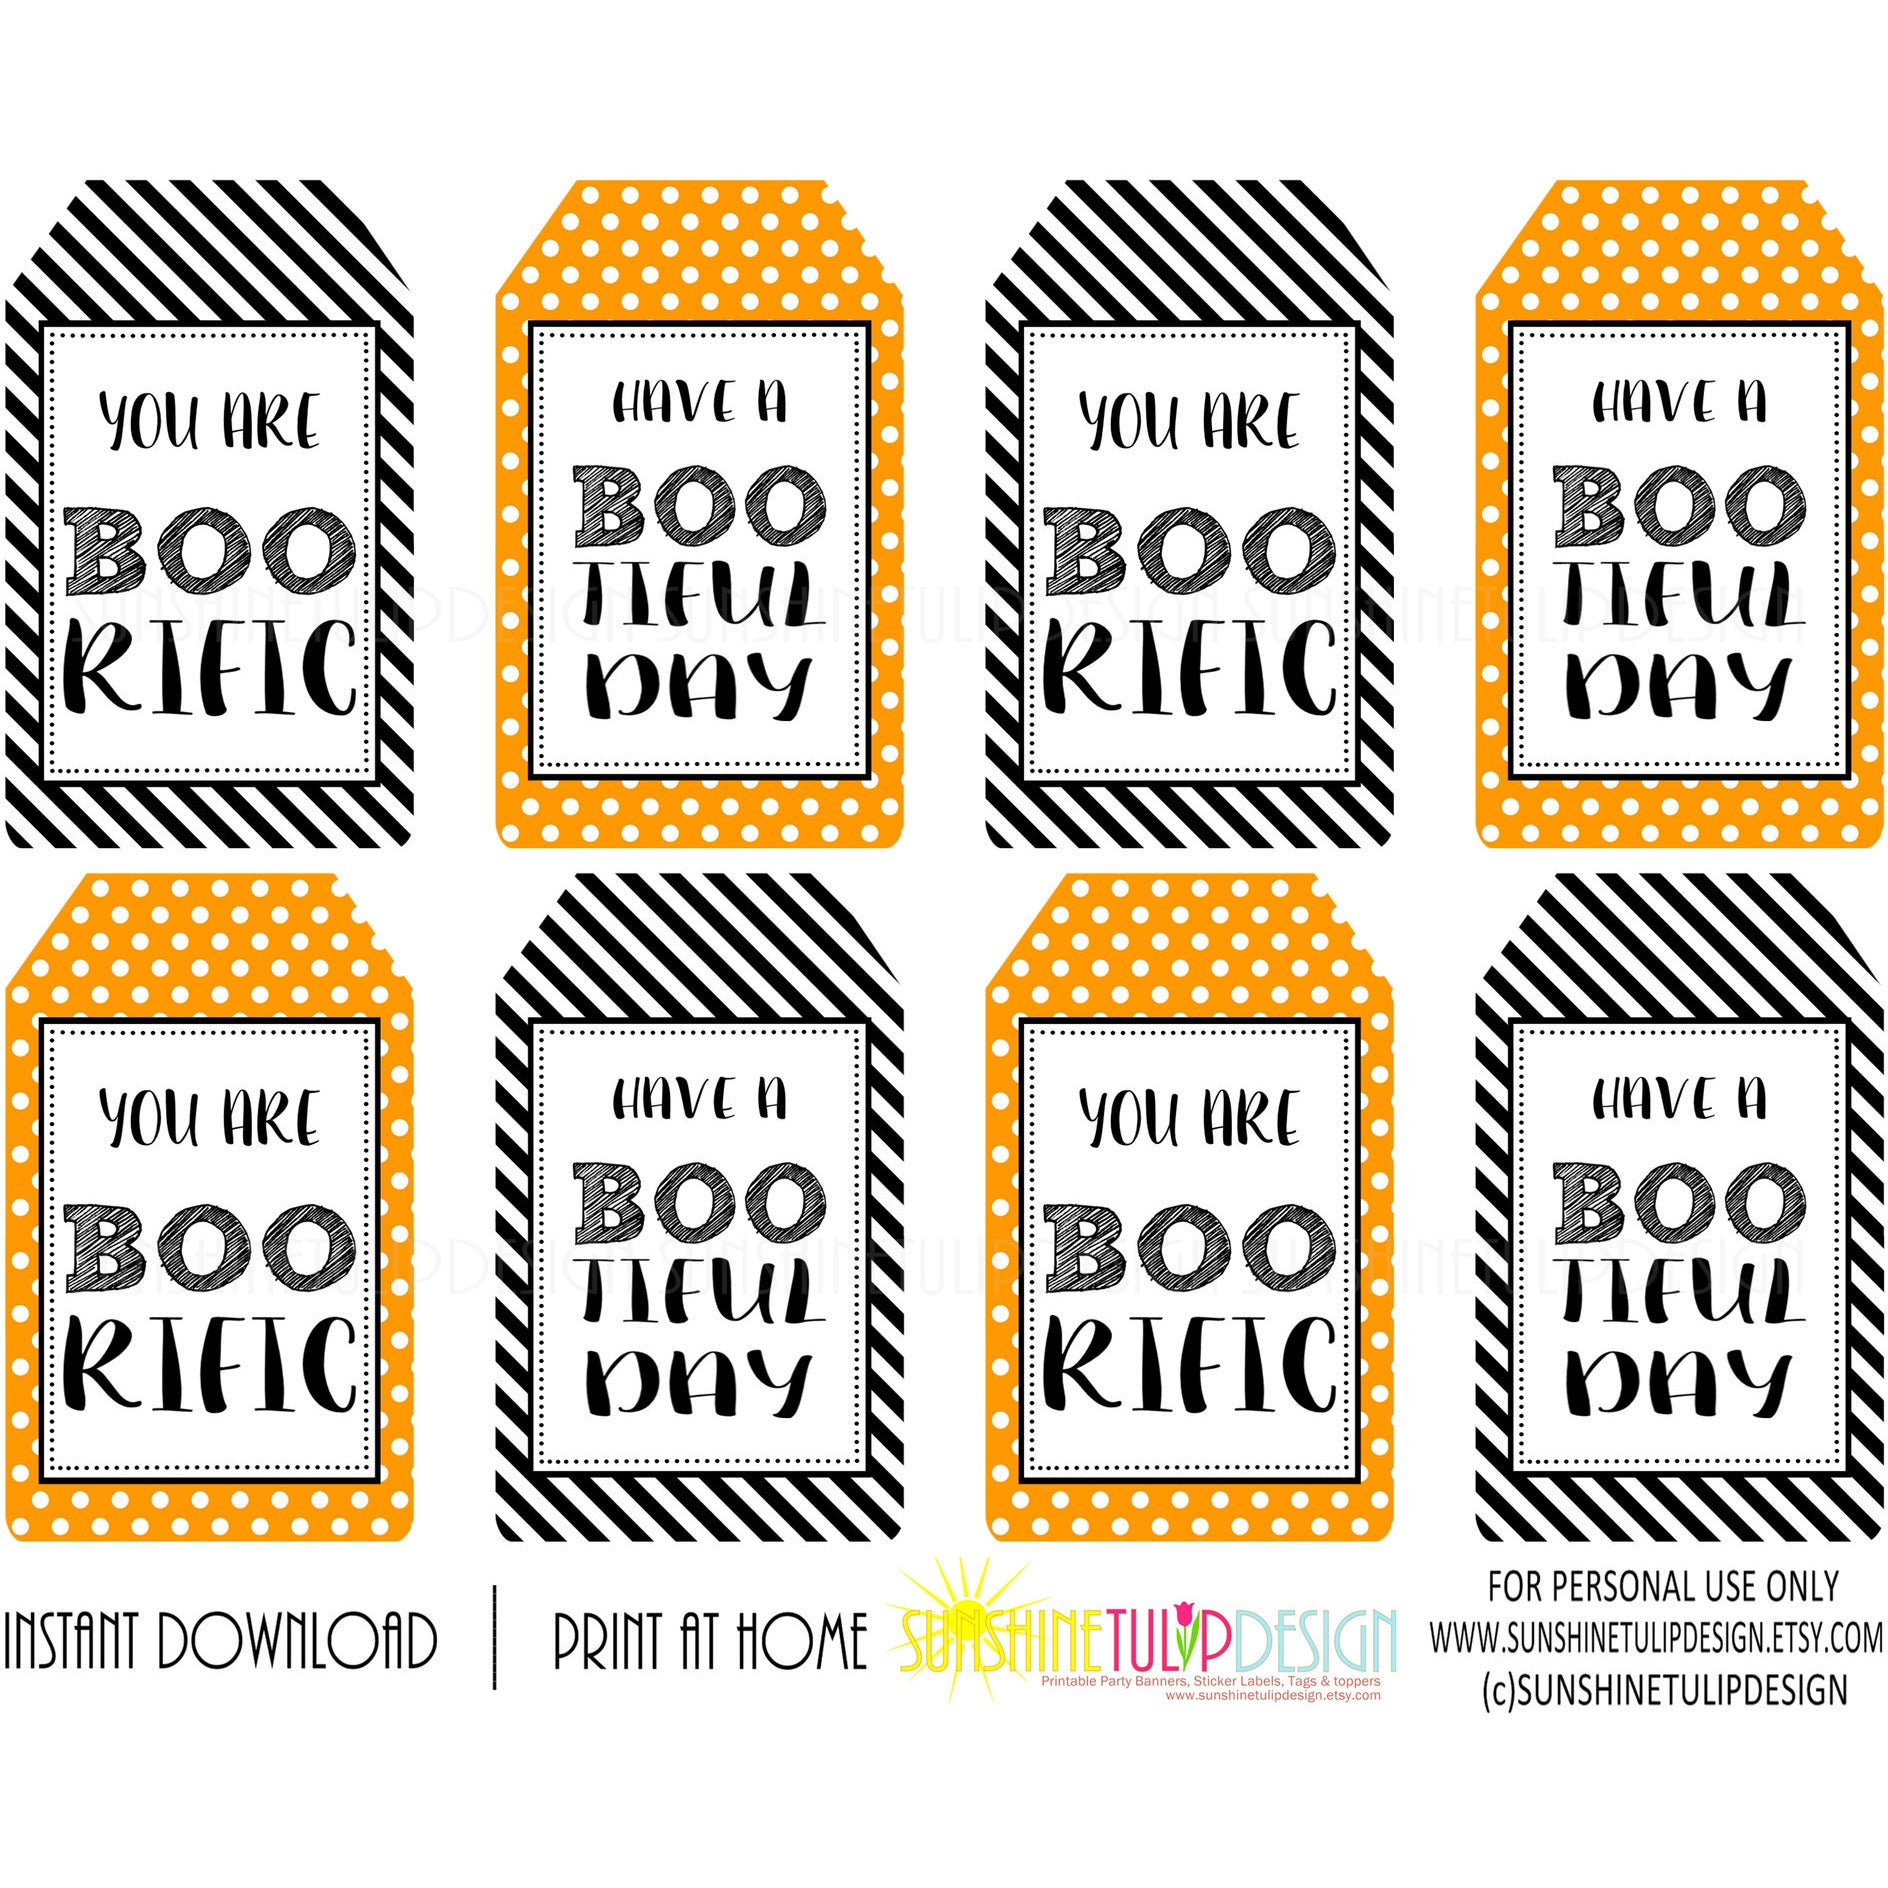 photo relating to Printable Halloween Labels called Printable Halloween Reward Tags, Halloween BOOrific BOOtiful Working day Desire Reward Tags as a result of Sunshinetulipdesign